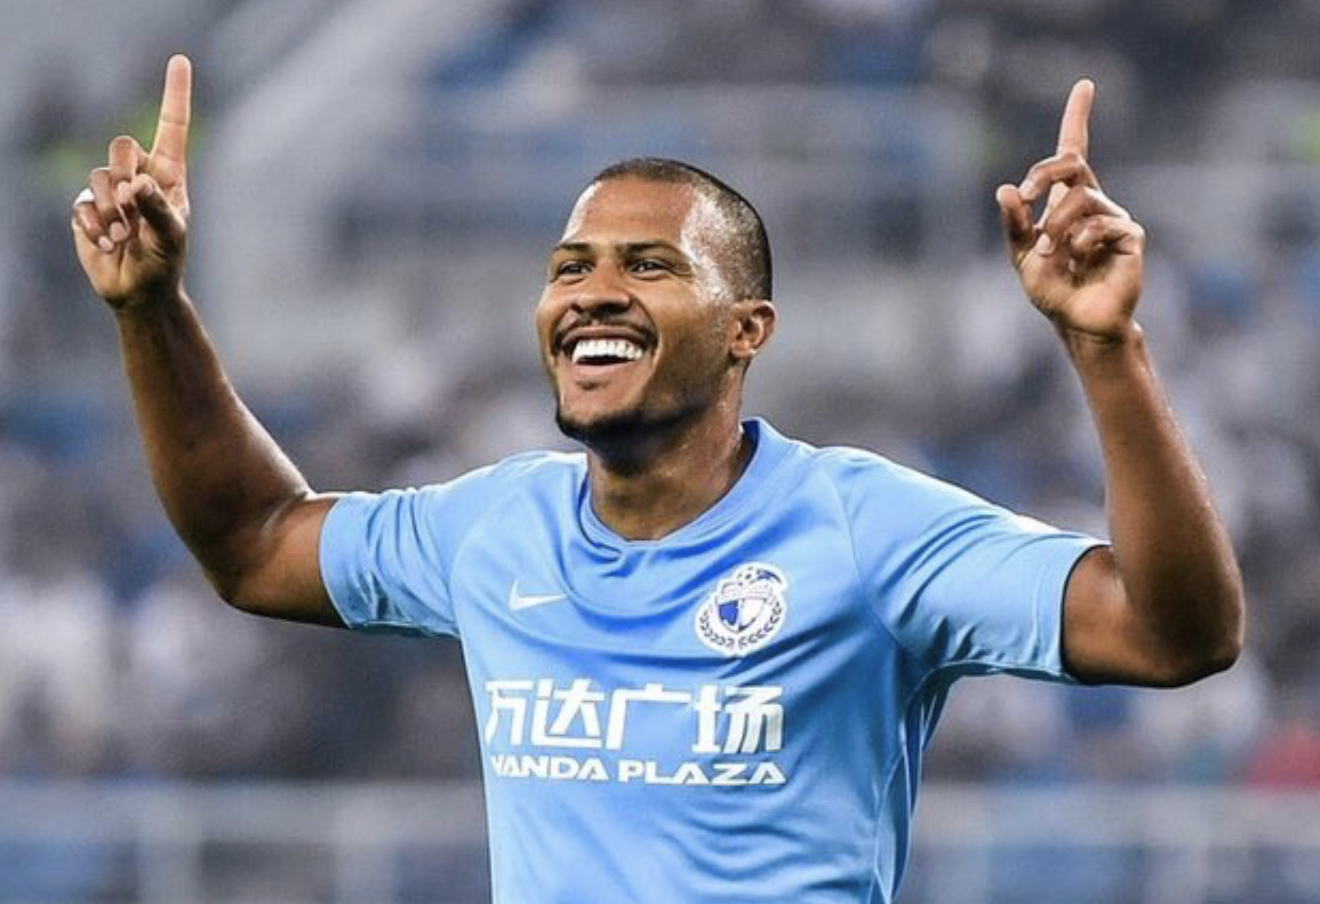 He came, saw & conquered: Rondón marks Dalian Yifang debut with goal of the game